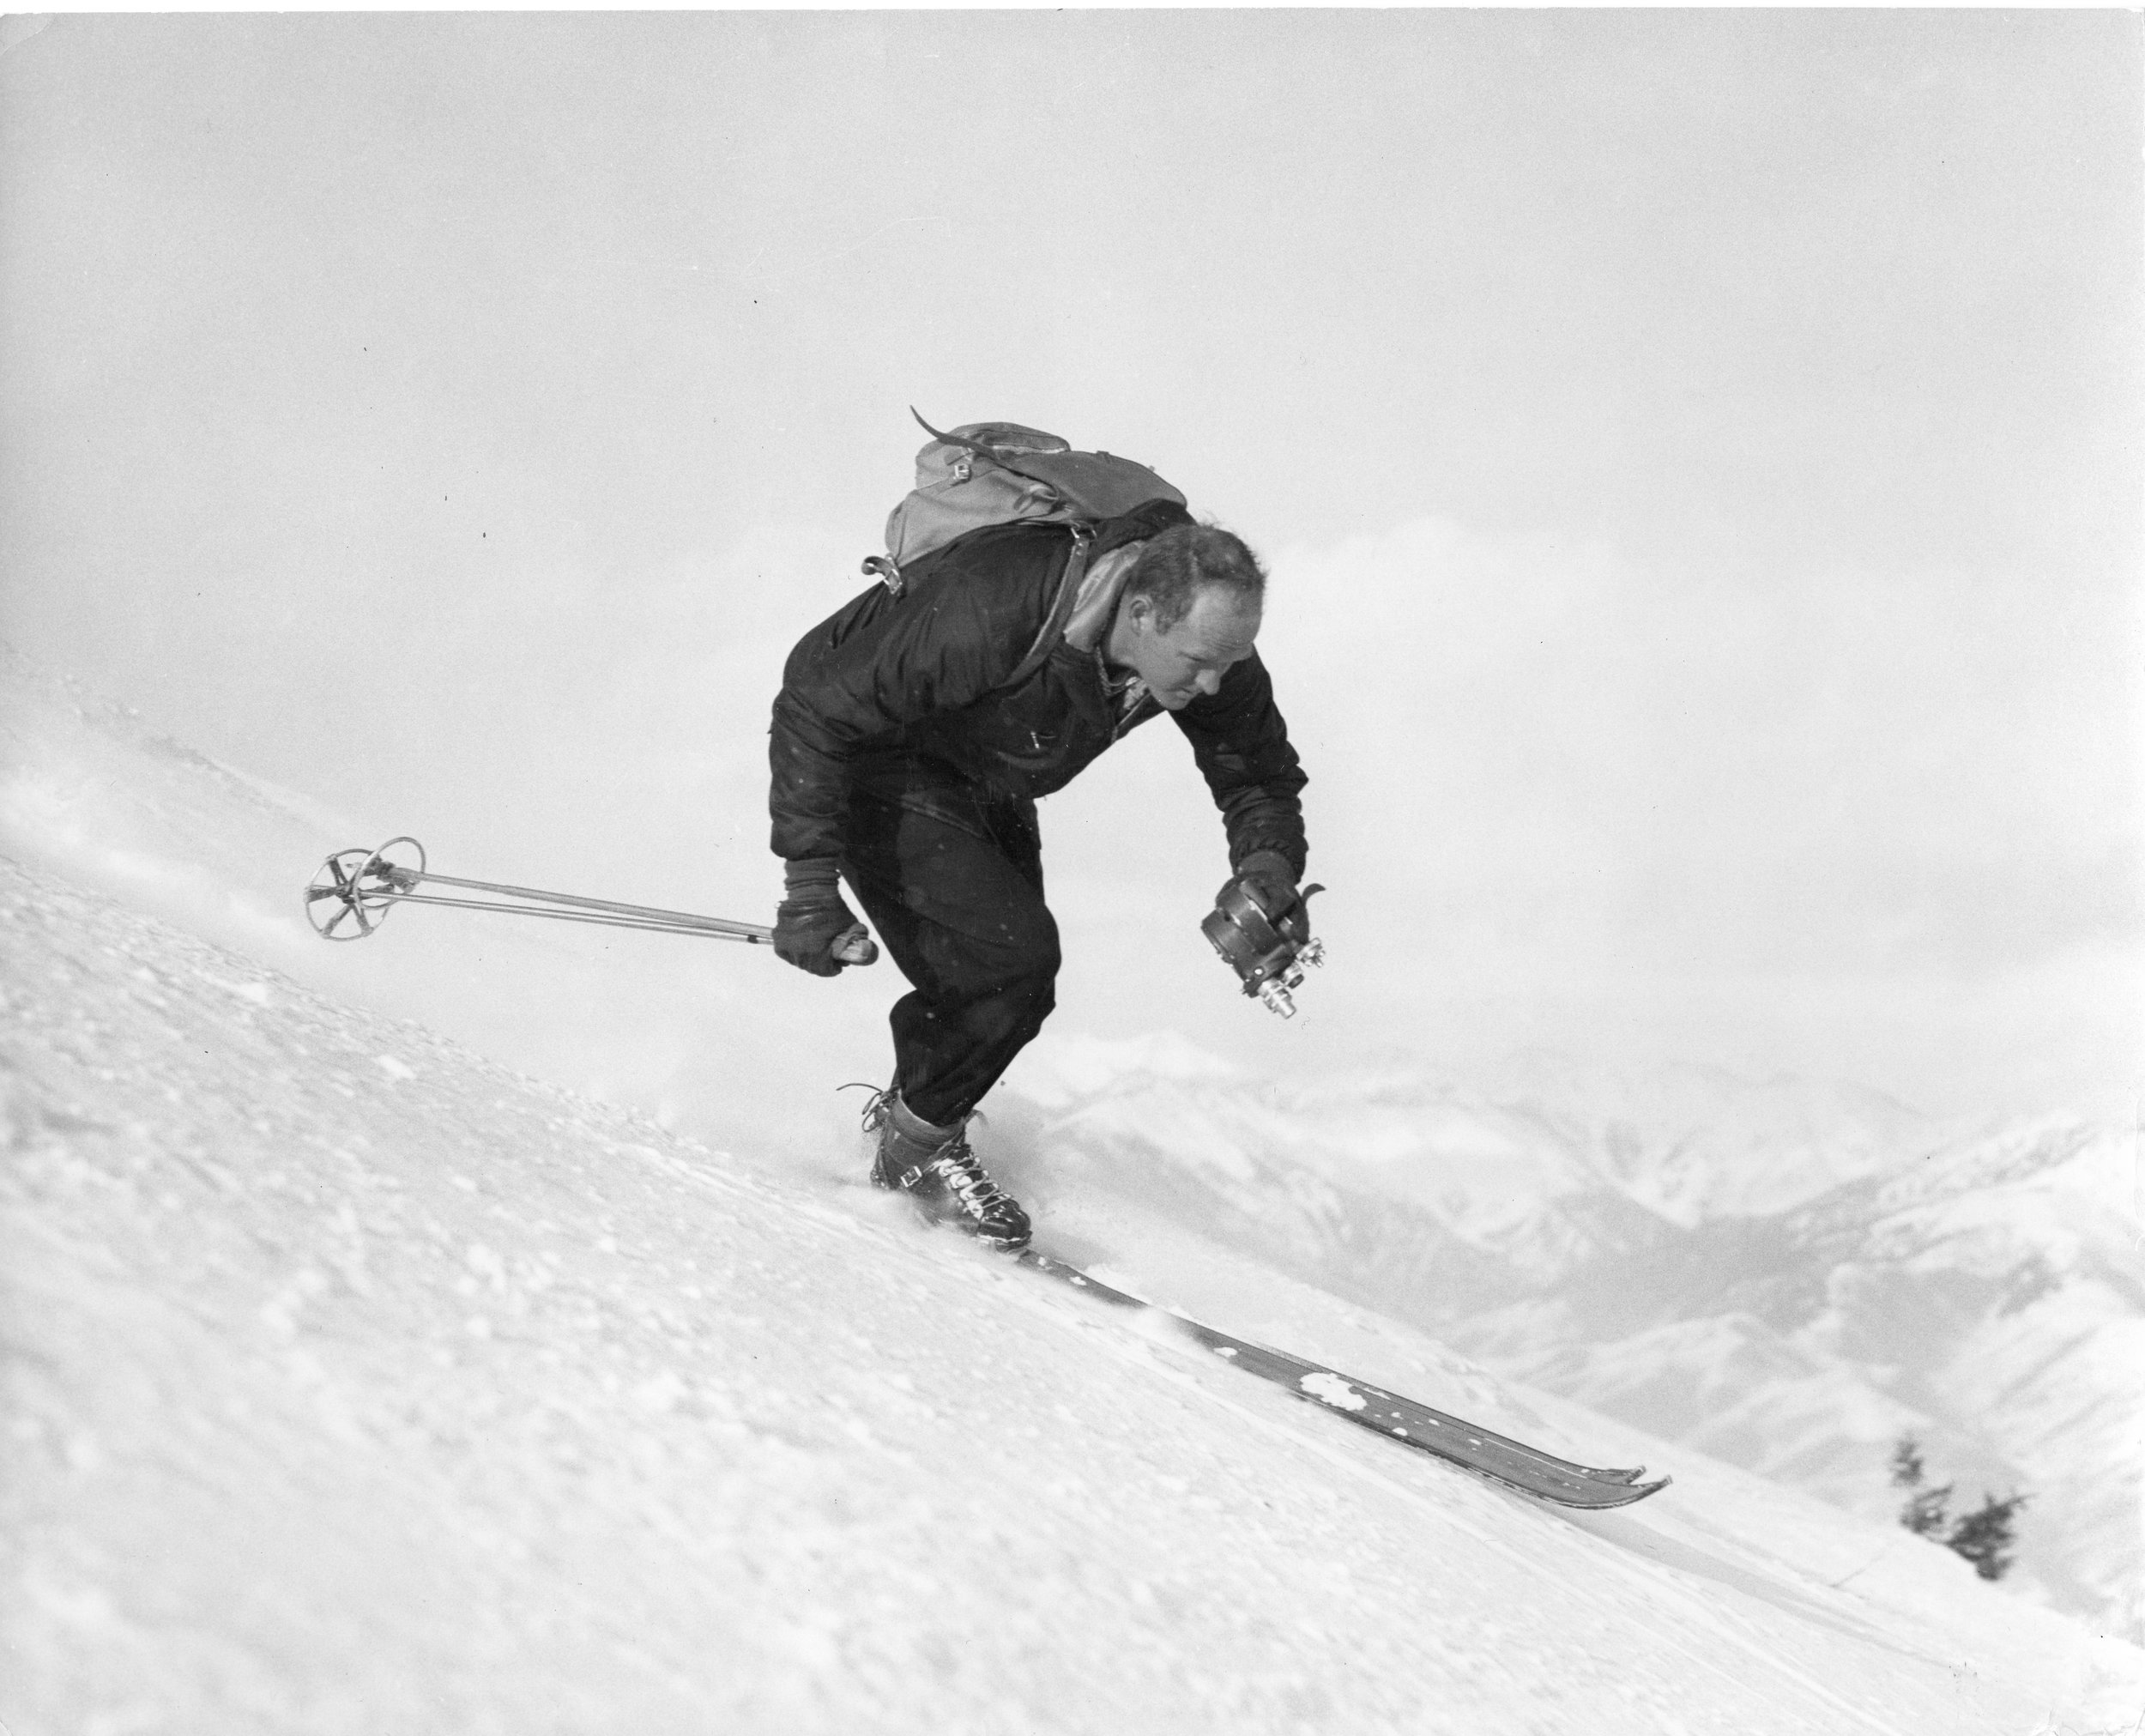 """Warren Miller, seen here in his early days of skiing and filming simultaneously, is the subject of the documentary """"Ski Bum: The Warren Miller Story,"""" which premieres Friday, Jan. 25, in Park City as the opening-night film of the 2019 Slamdance Film Festival. (Photo courtesy of Lorton Productions)"""